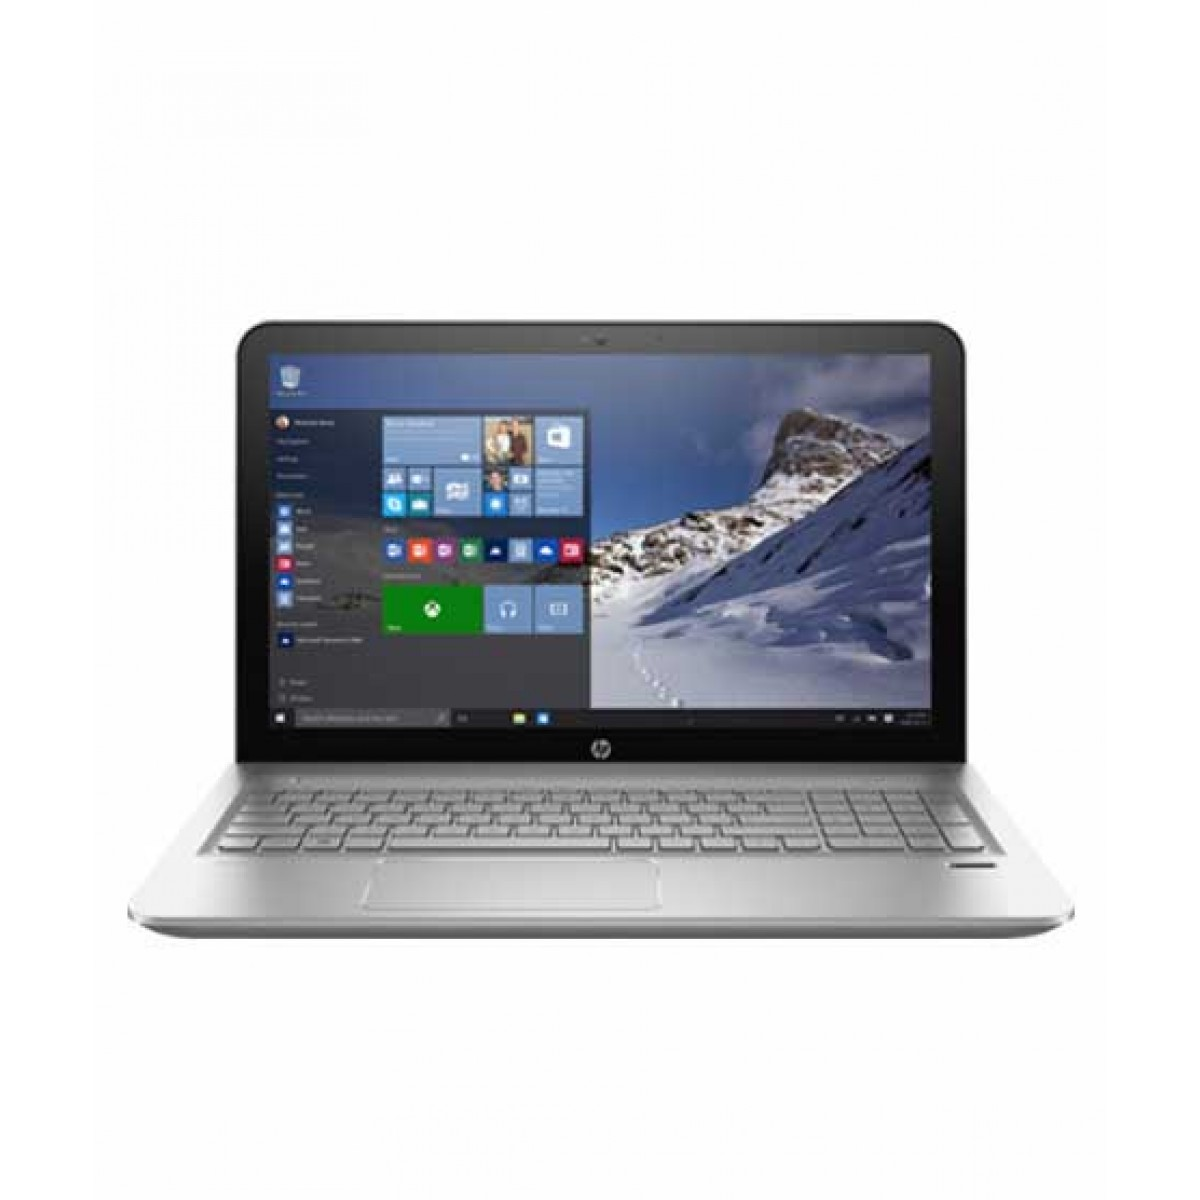 Hp Envy 15 6 Quot Core I7 6th Generation Laptop Price In